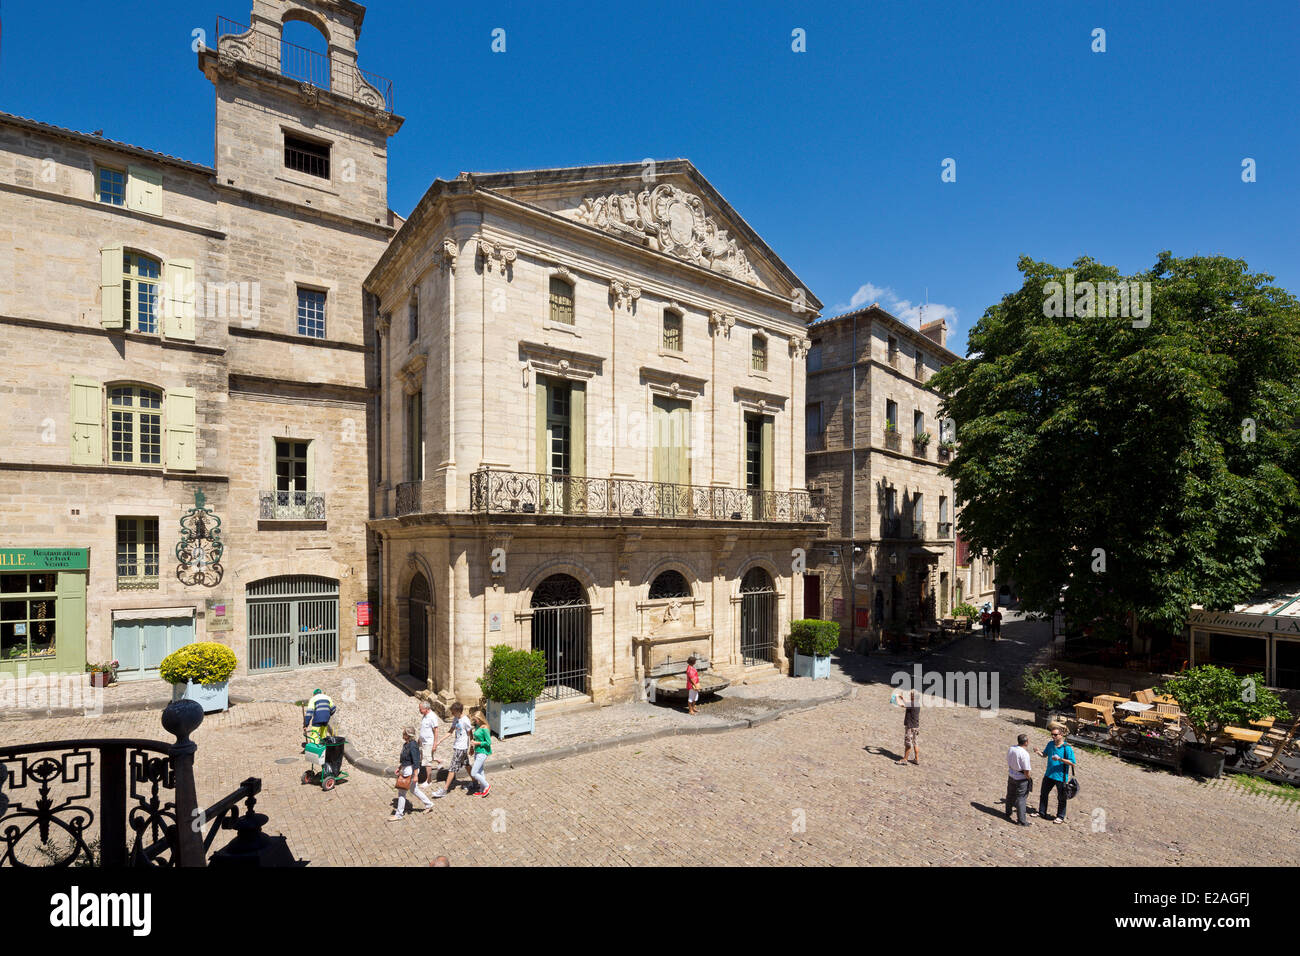 France, Herault, Pezenas, Hotel des Consuls Mansion and its fountain in Place Gambetta - Stock Image